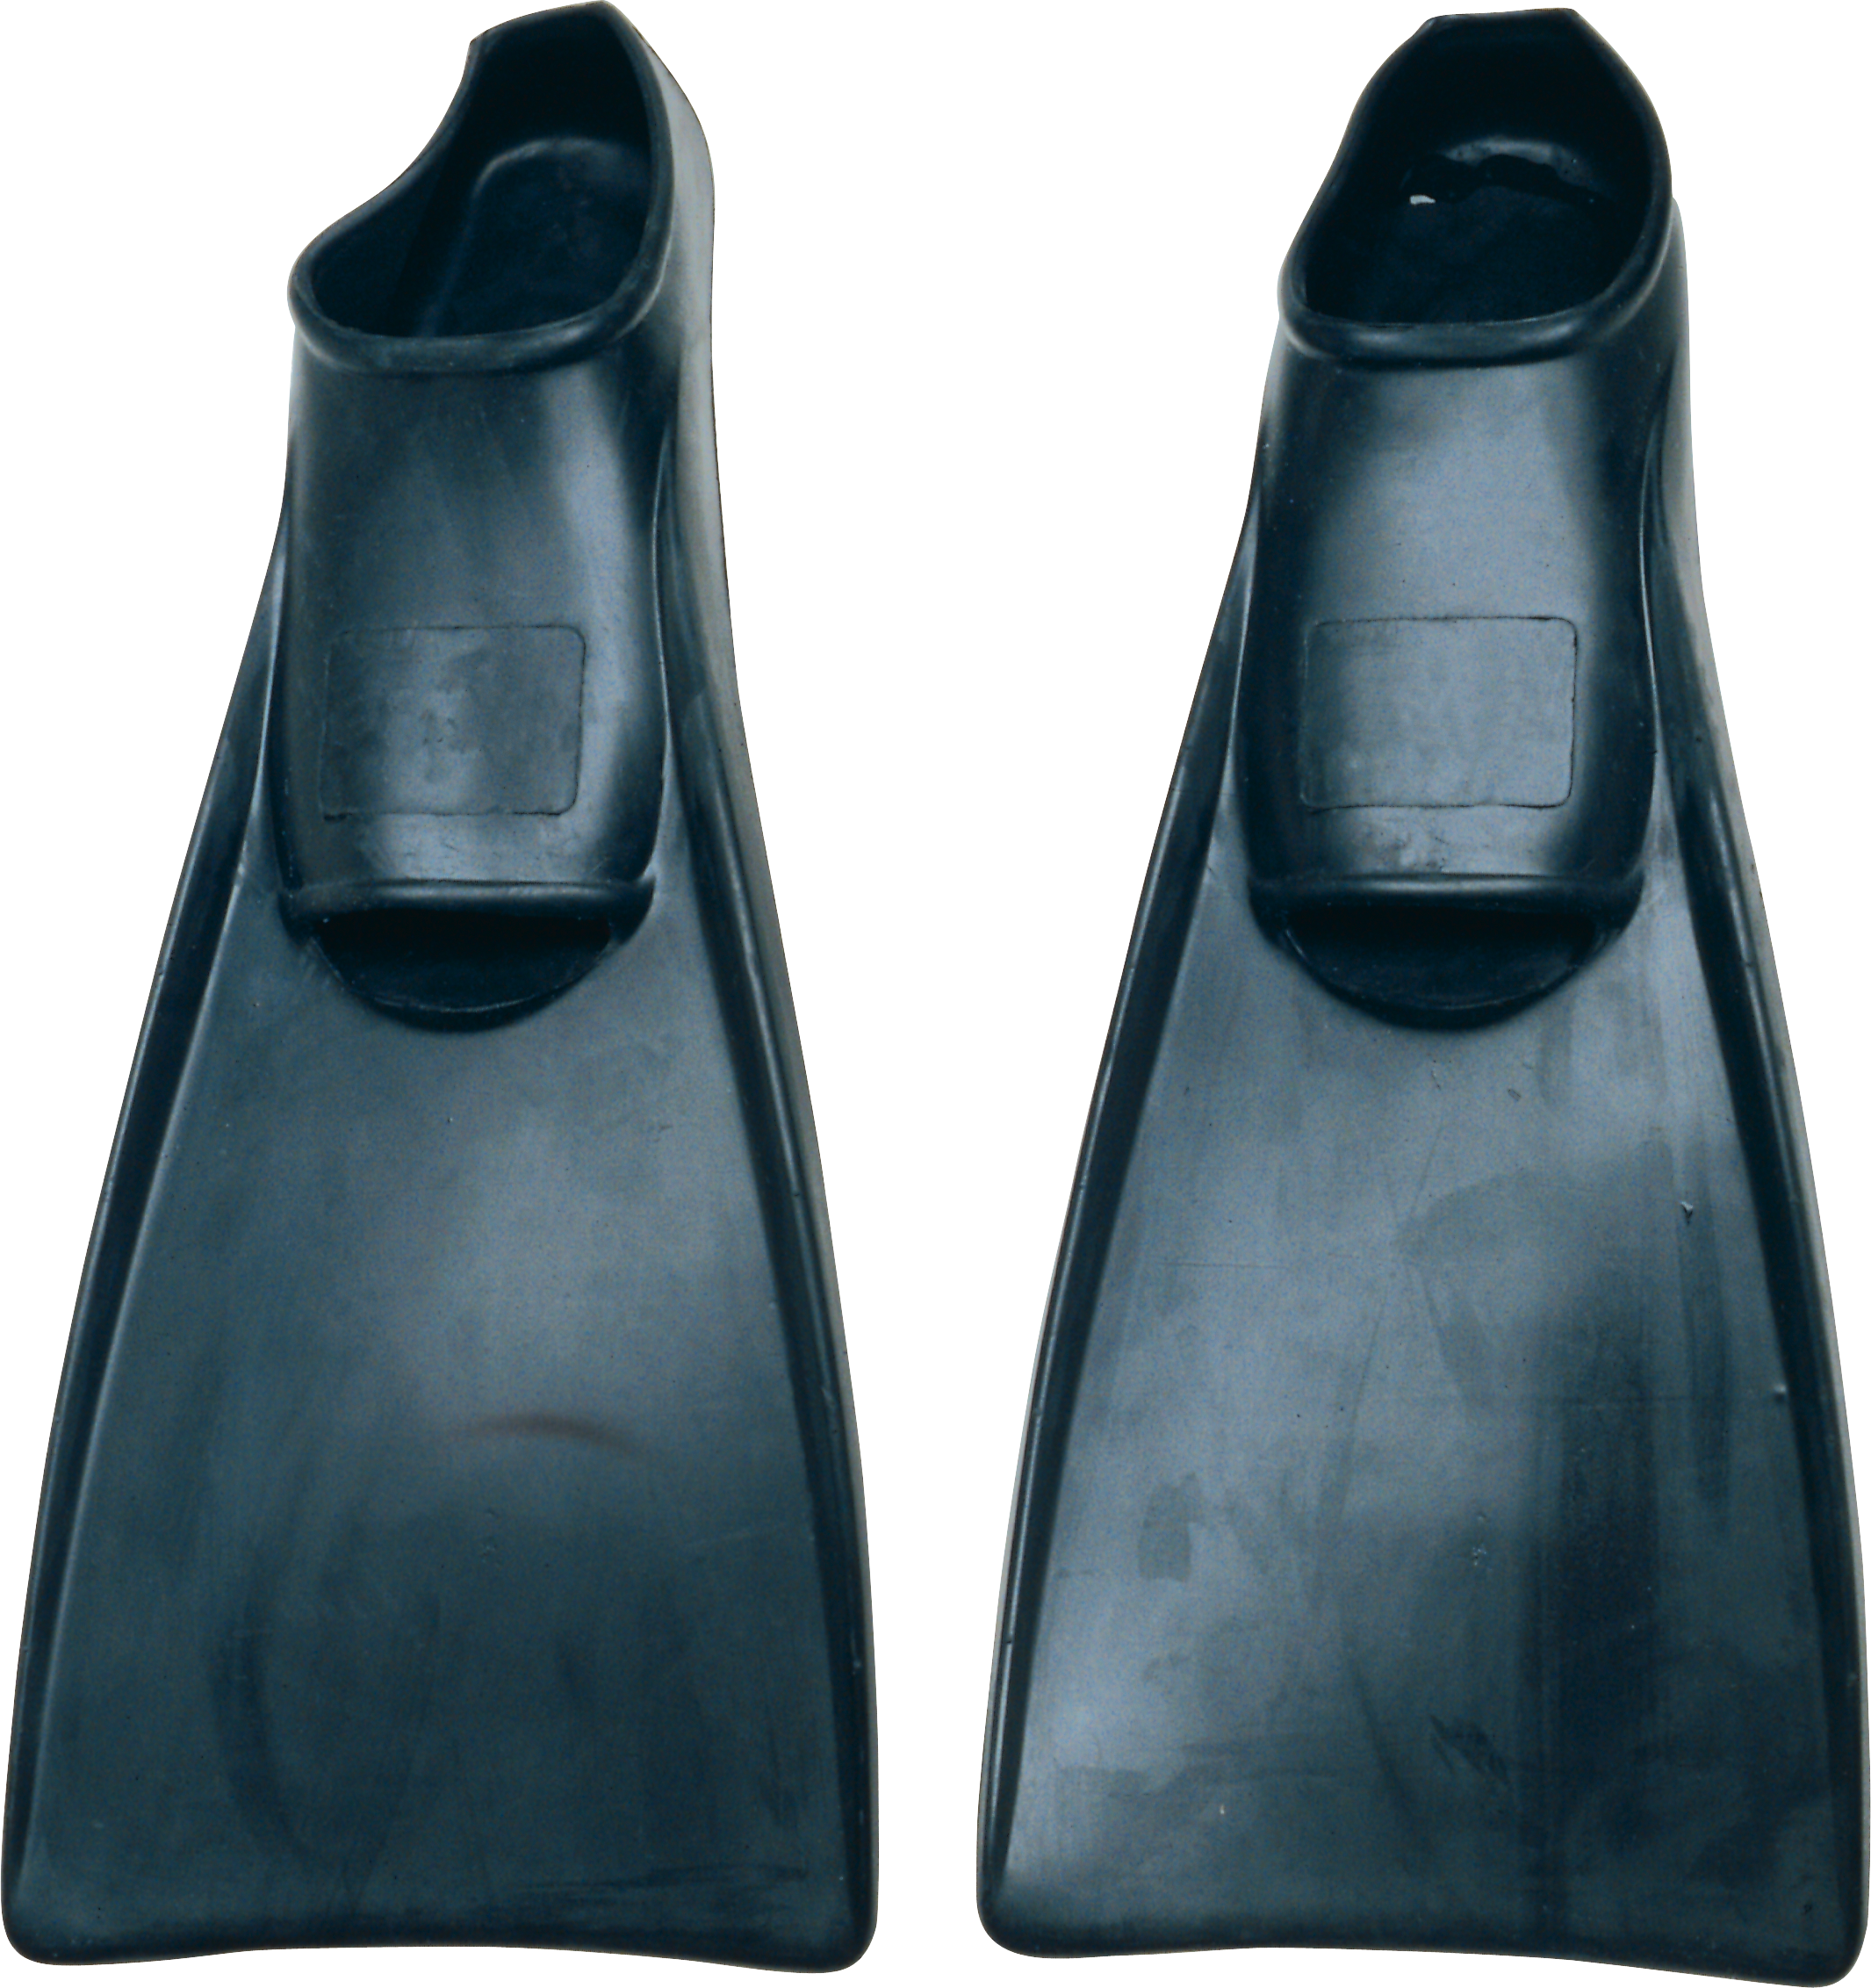 uploads flippers flippers PNG37438 24